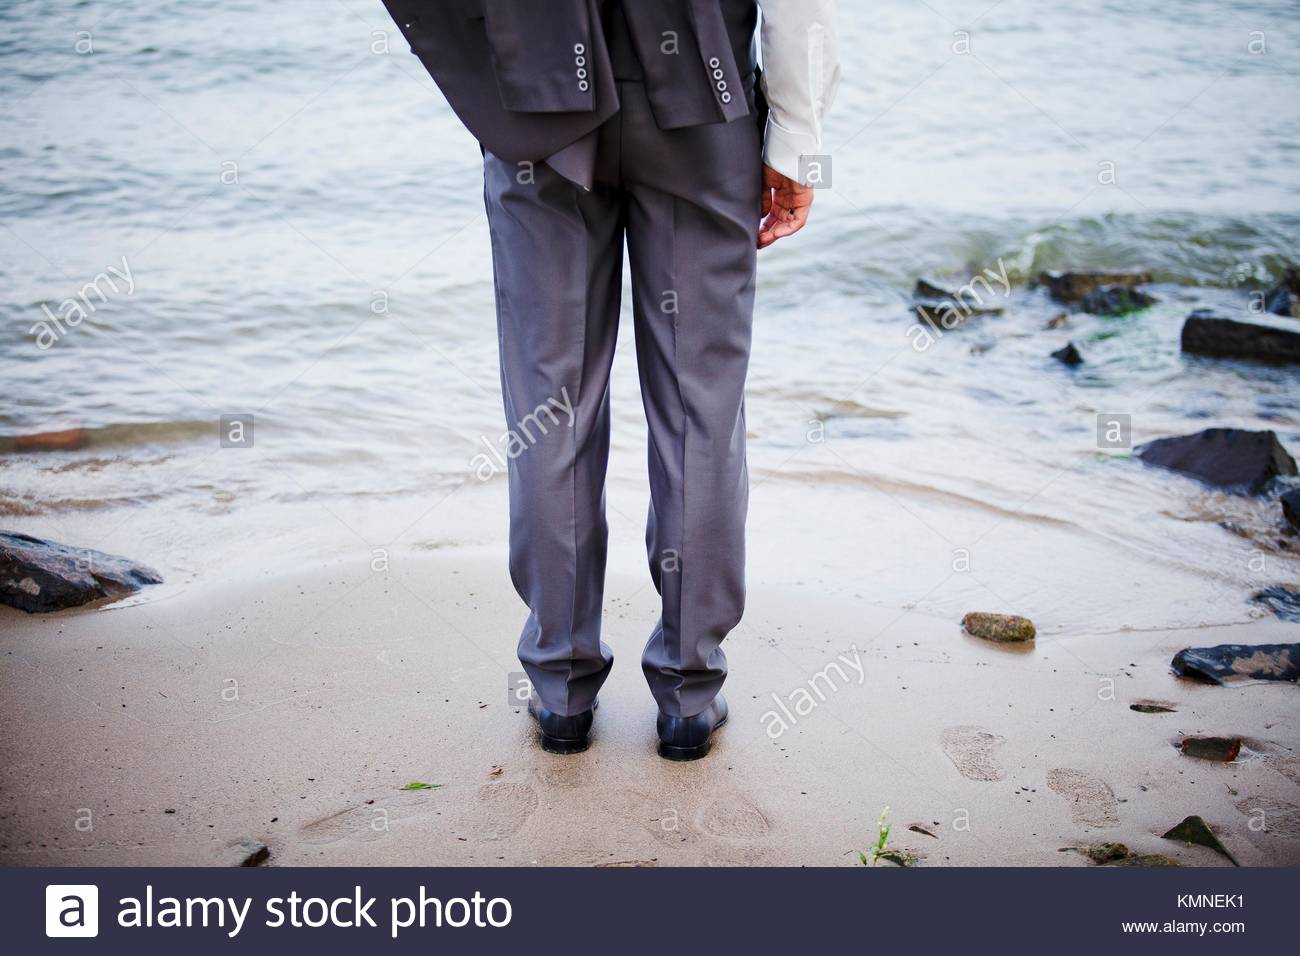 suit; wedding; dressed; man; male; fashion; fashionable; beach; dress code - Stock Image